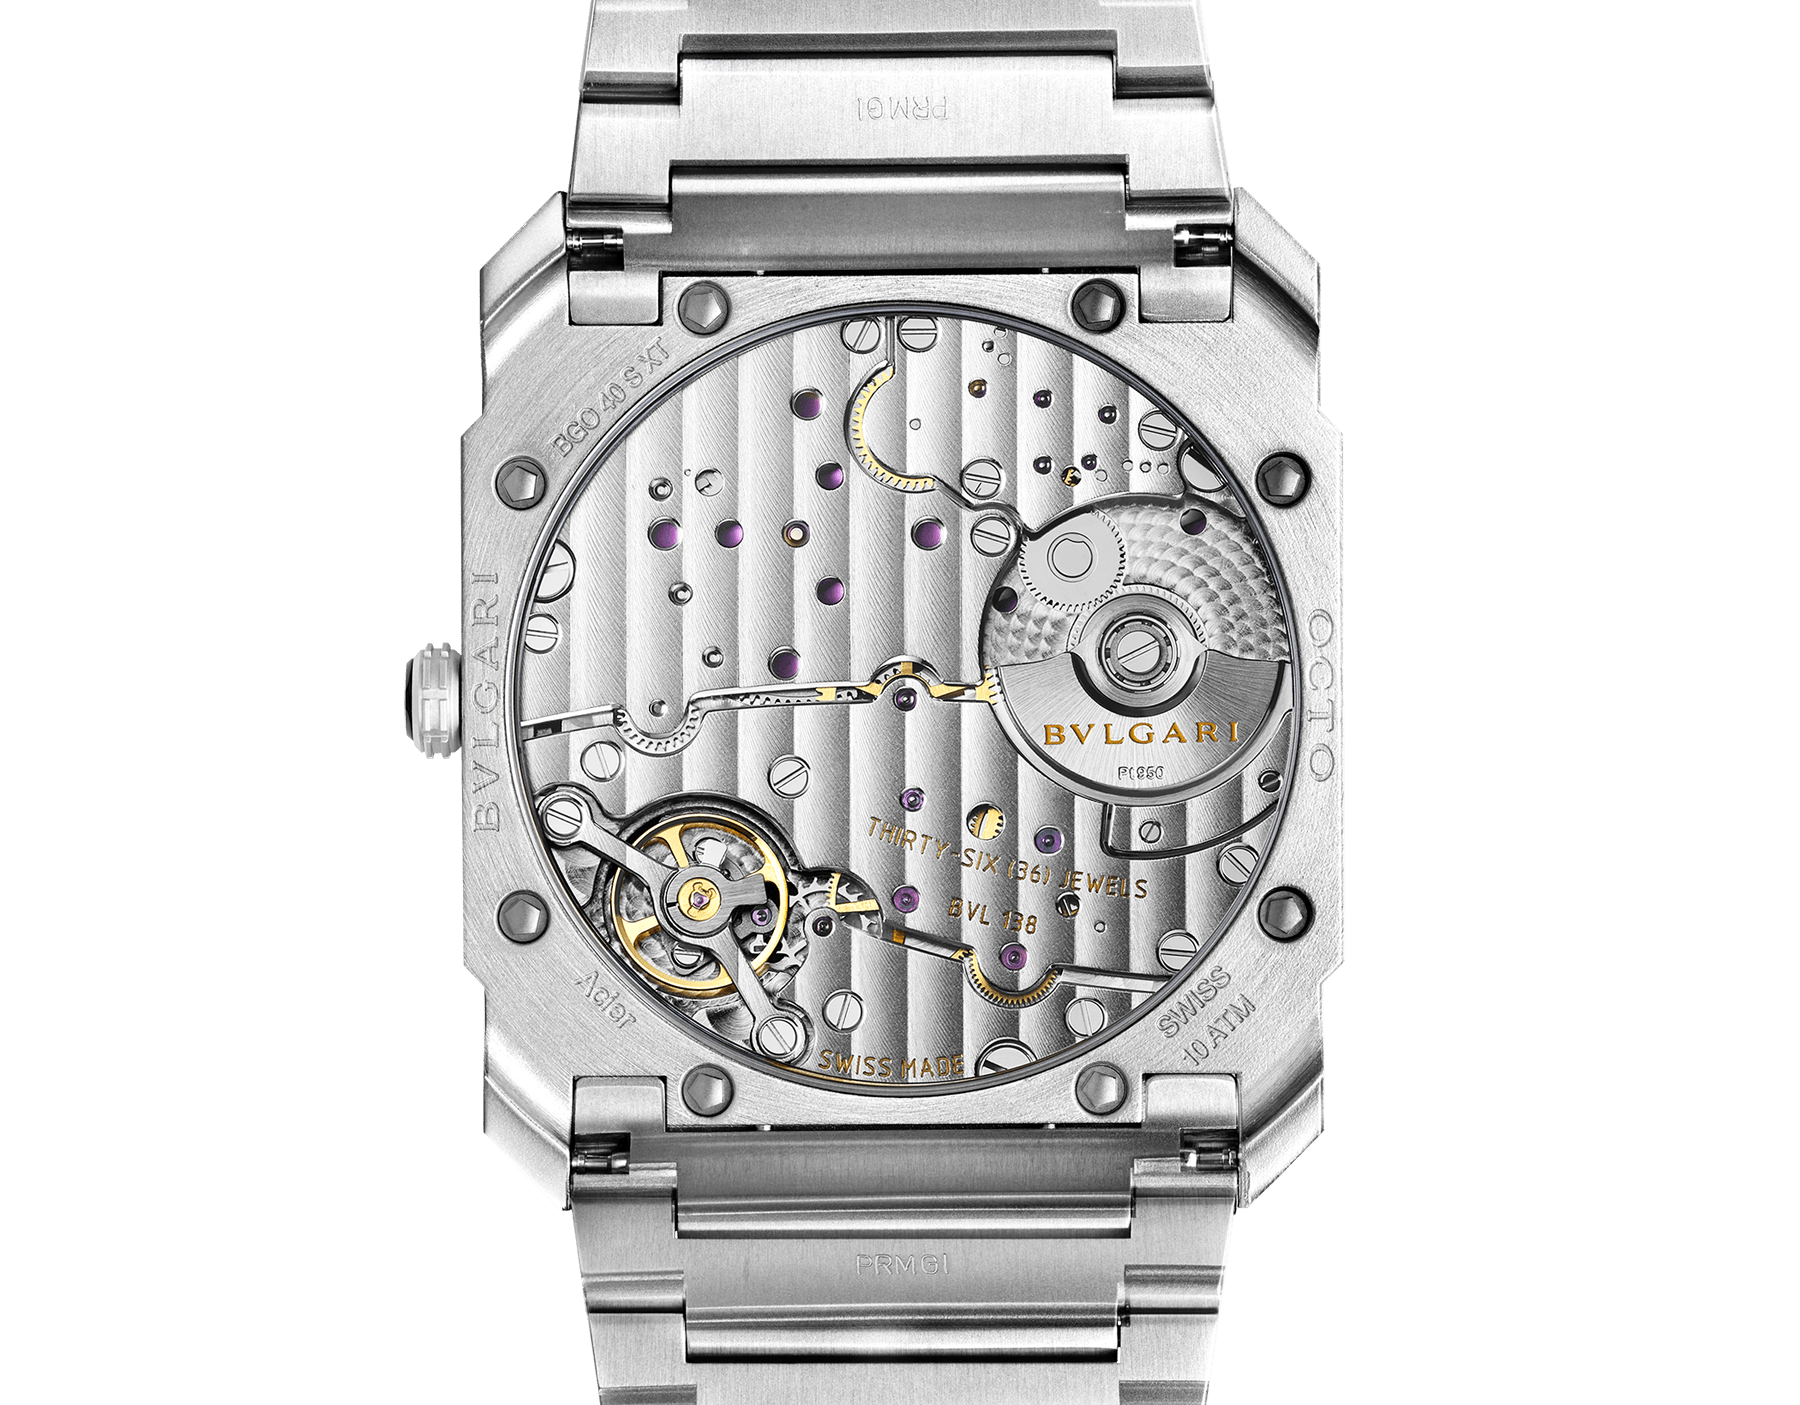 Octo Finissimo Automatic watch with mechanical manufacture movement, automatic winding, platinum microrotor, small seconds, extra-thin satin-polished stainless steel case and bracelet, transparent case back and black matte dial. Water-resistant up to 100 metres 103297 image 4